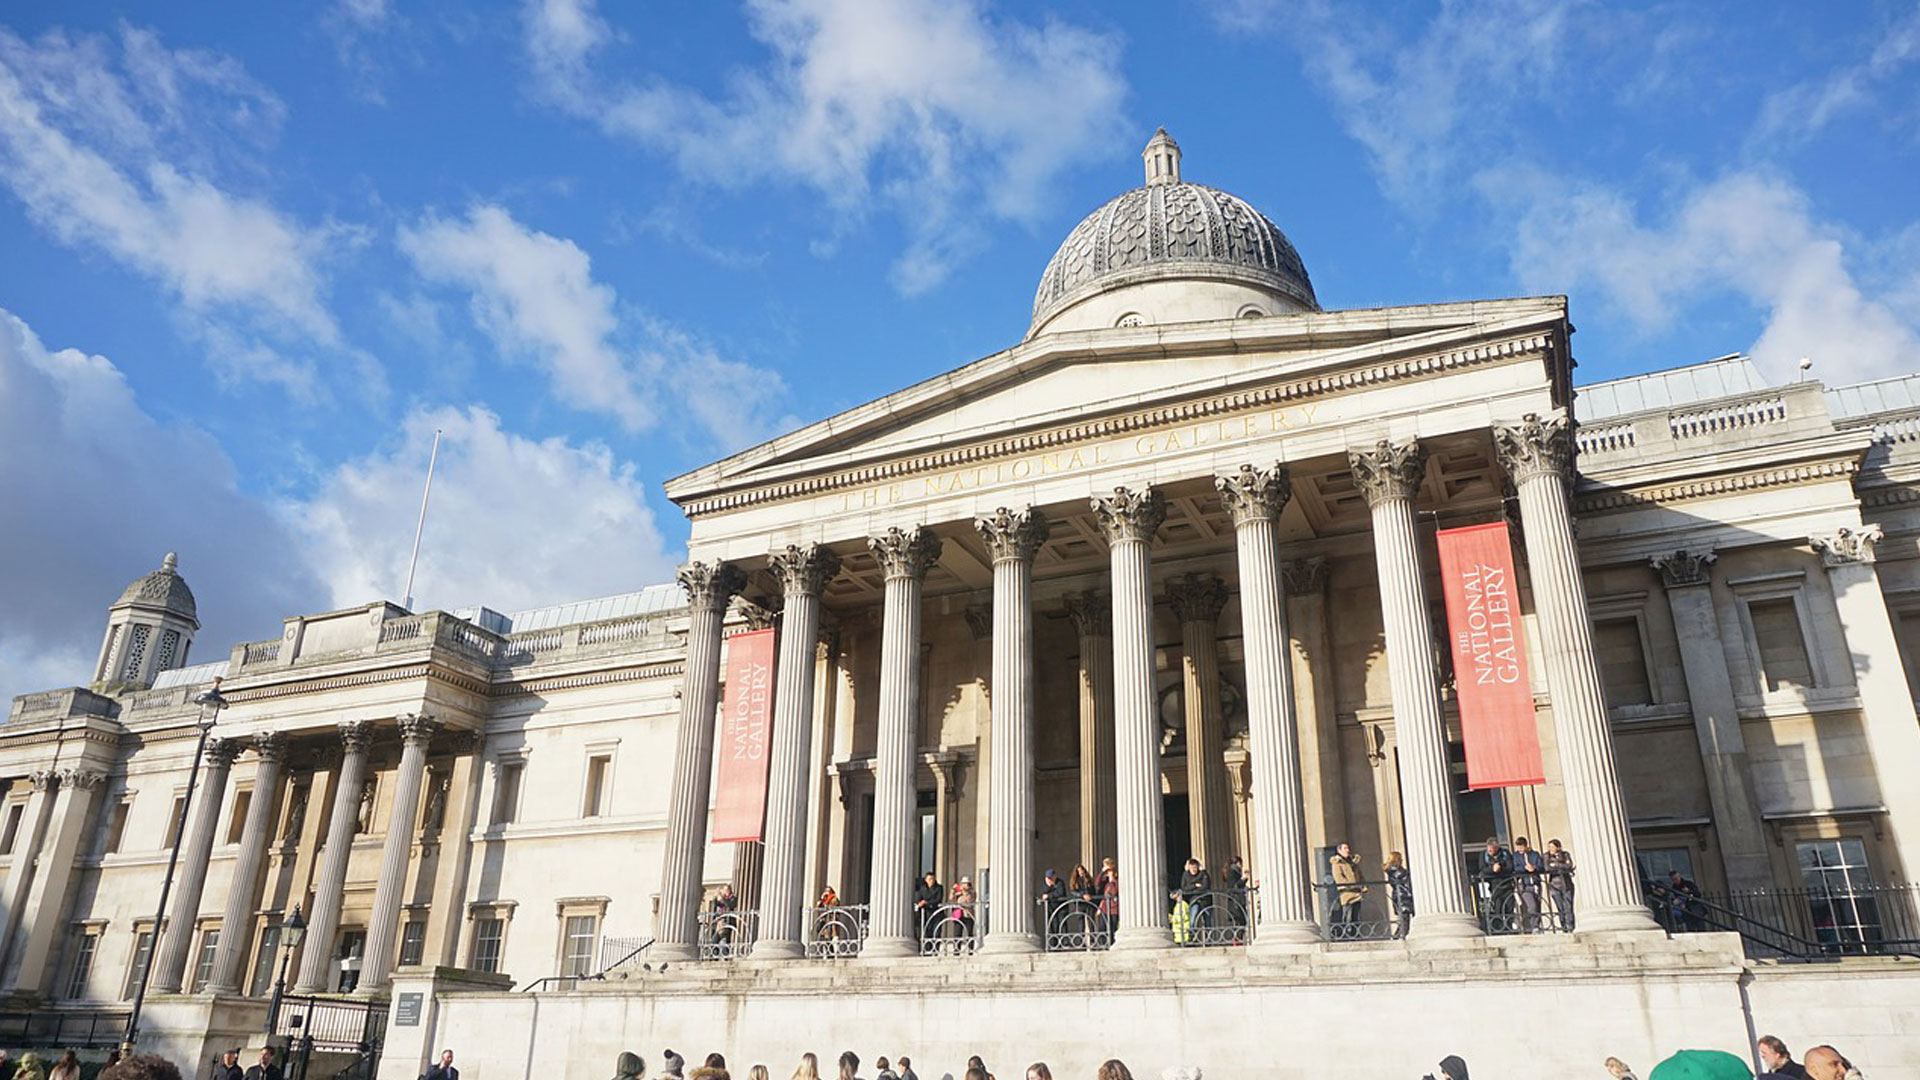 London's Art Galleries and Museums